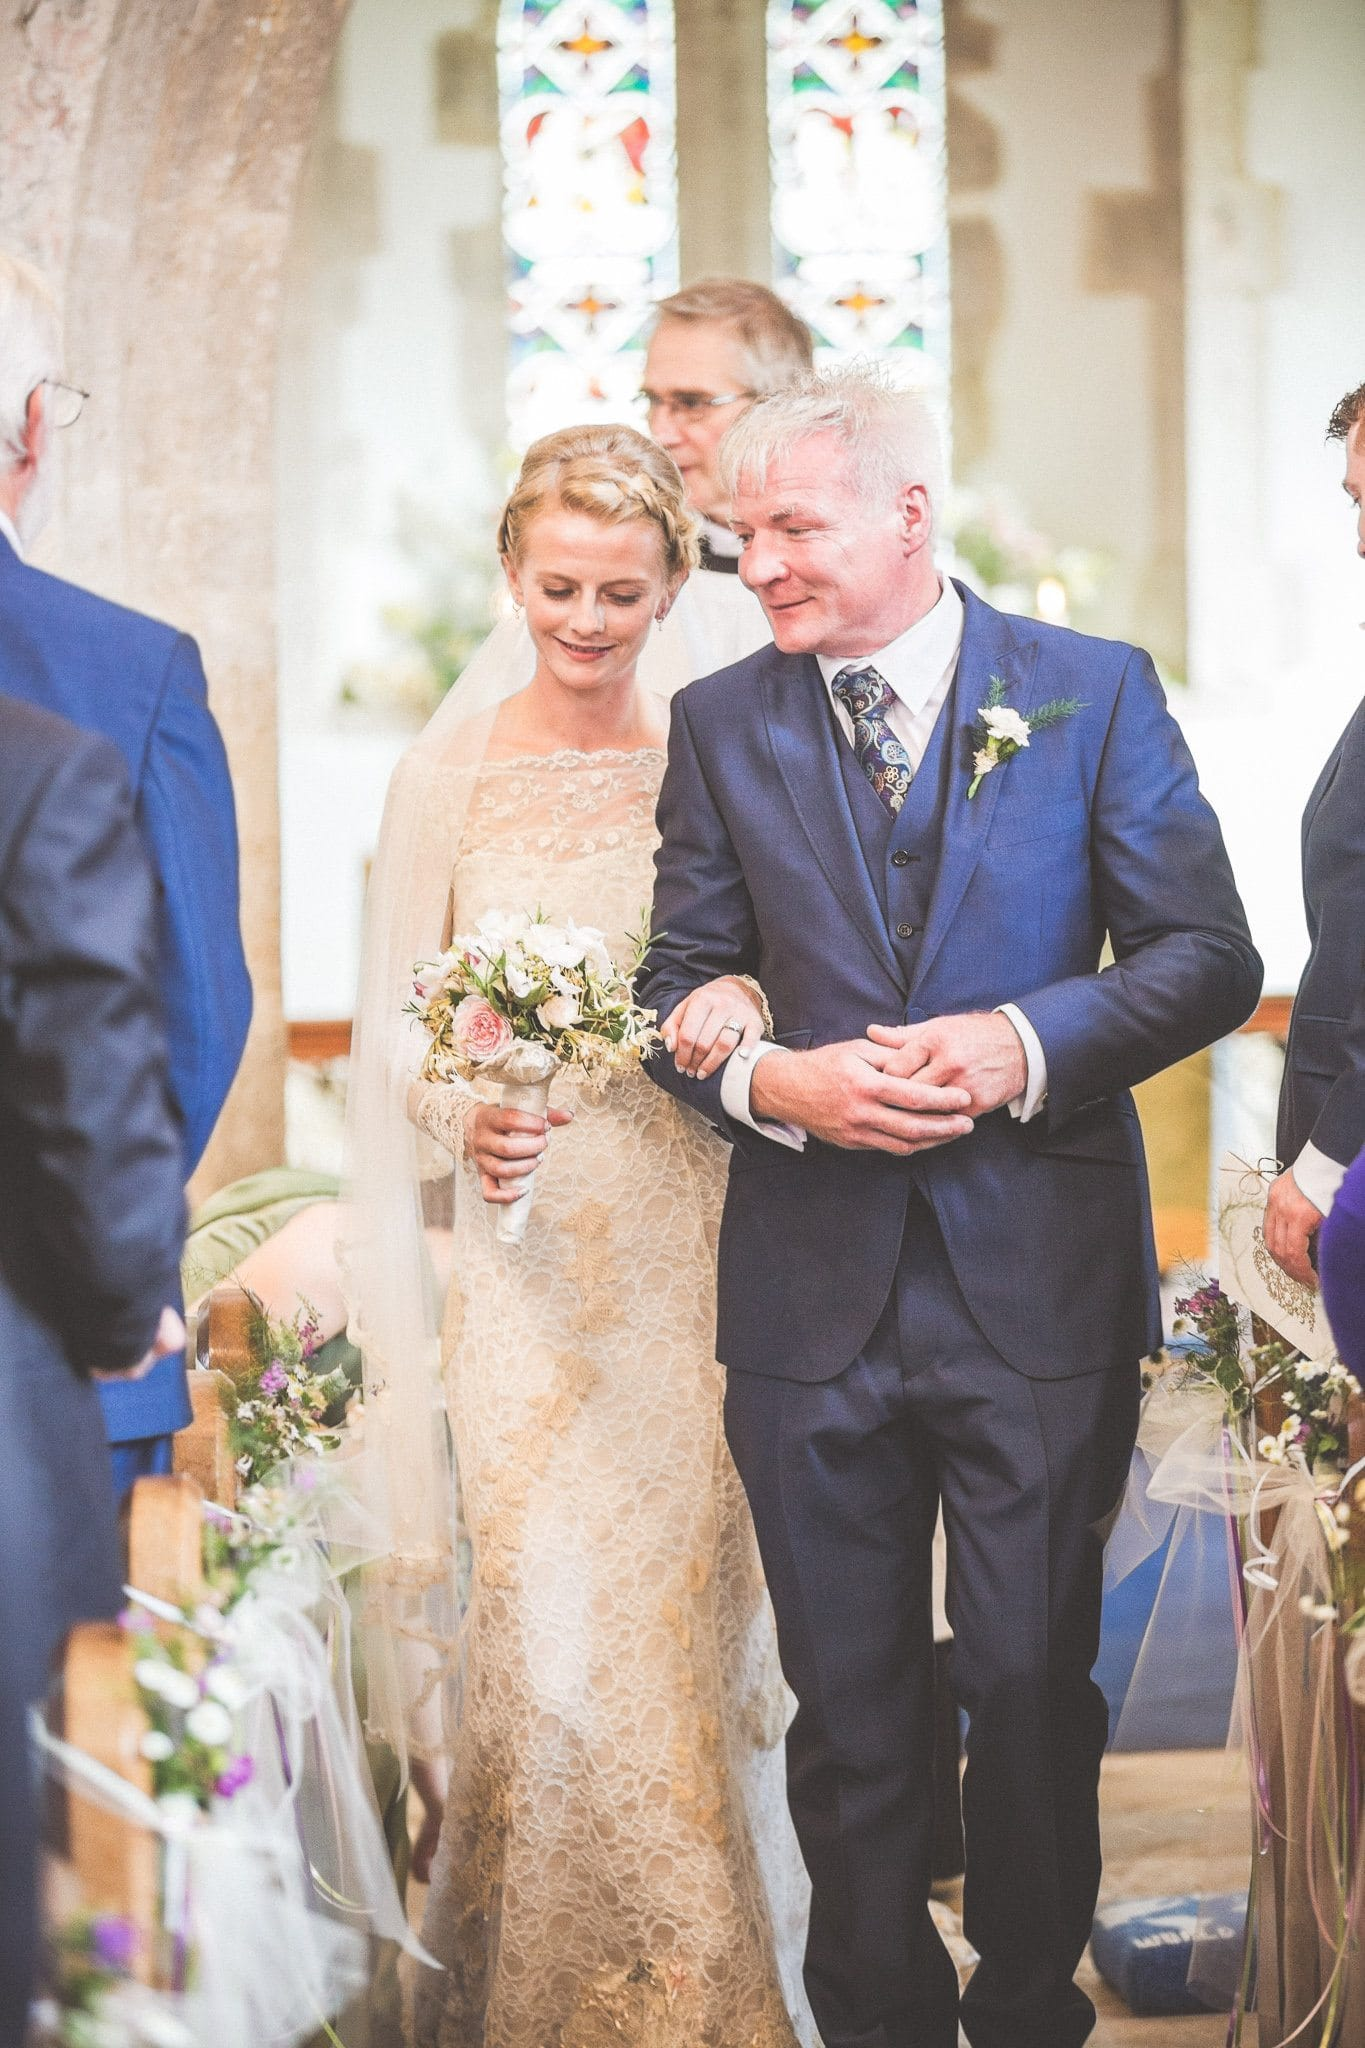 Bride in handmade lace dress walks back down the aisle of the church with her new husband